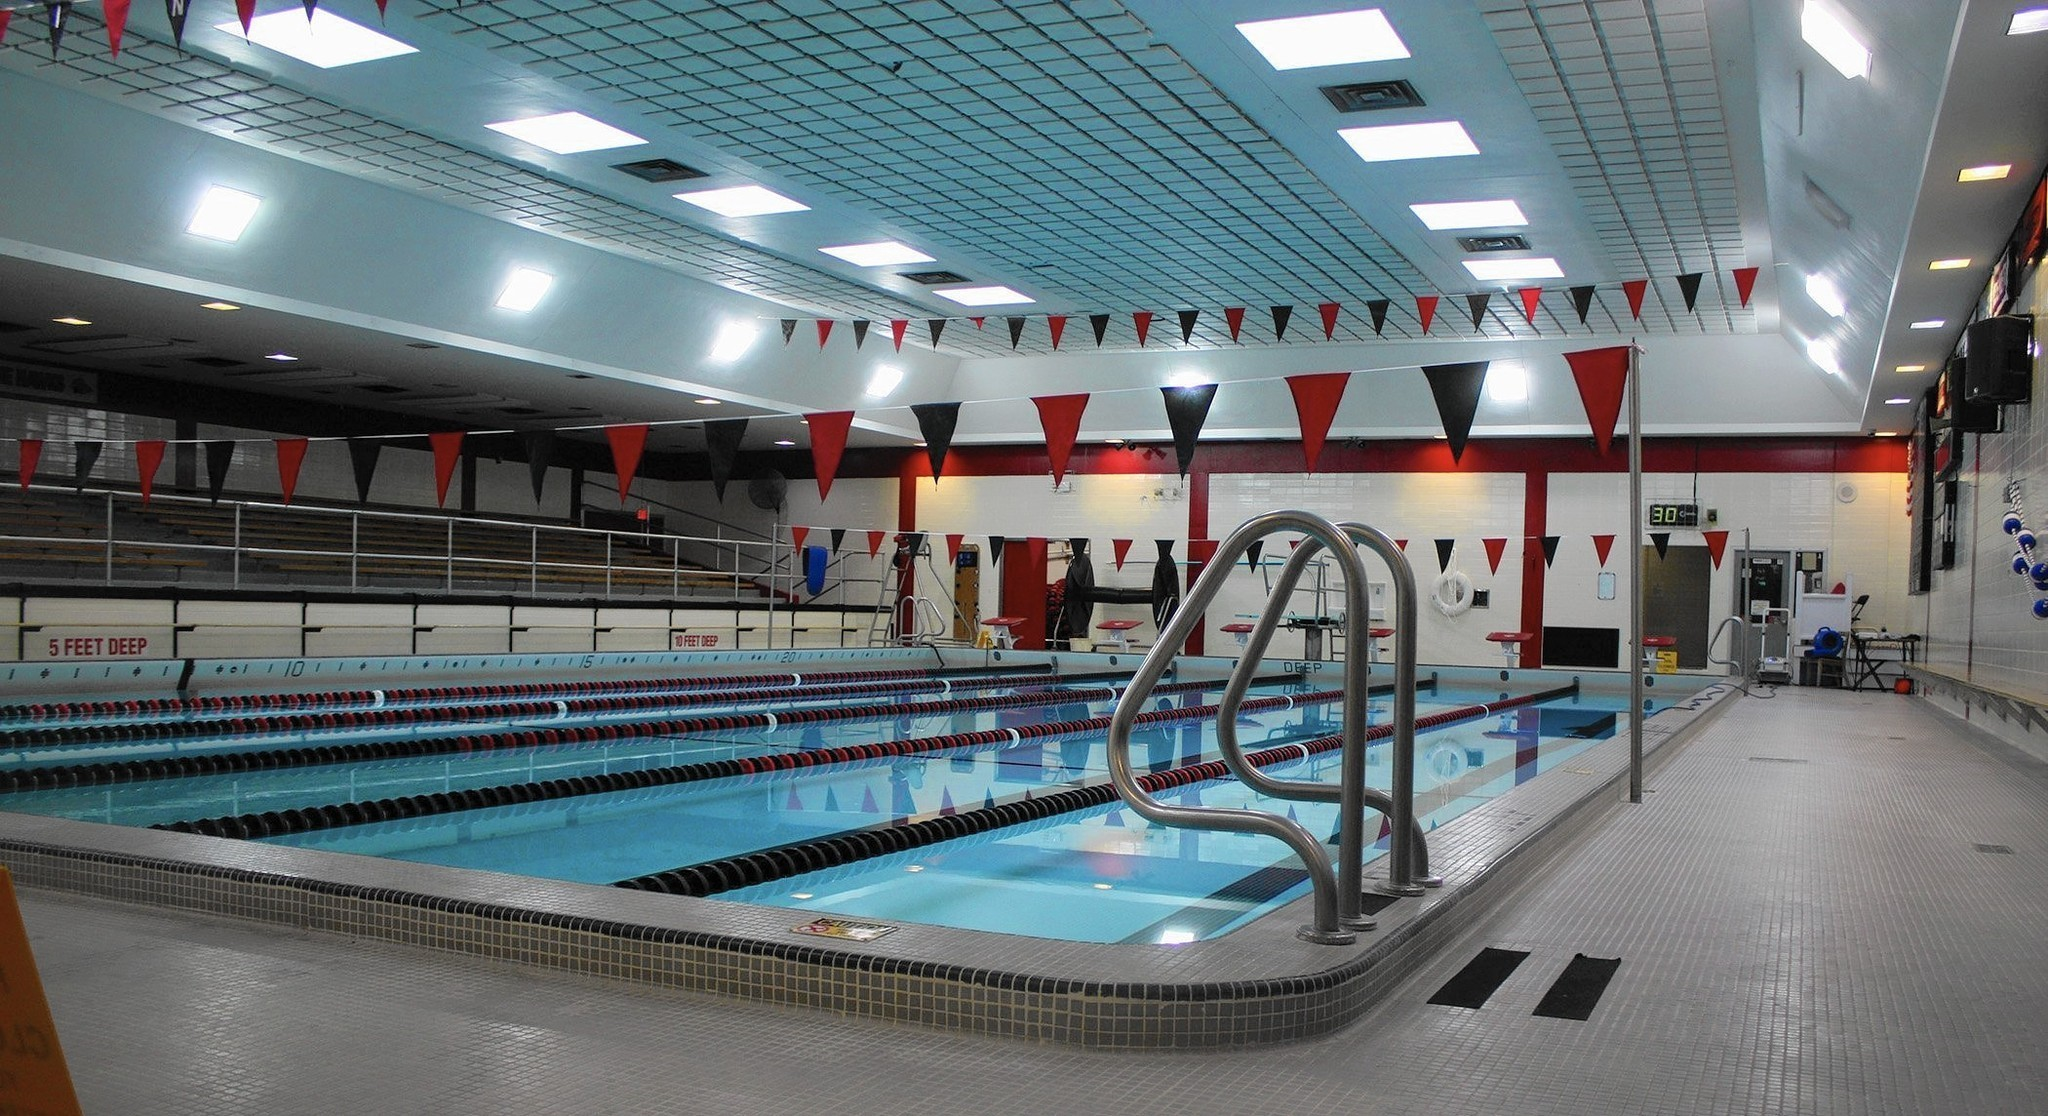 Maine south boys swimmers raise health concerns about school pool park ridge herald advocate for Public swimming pools locations maine